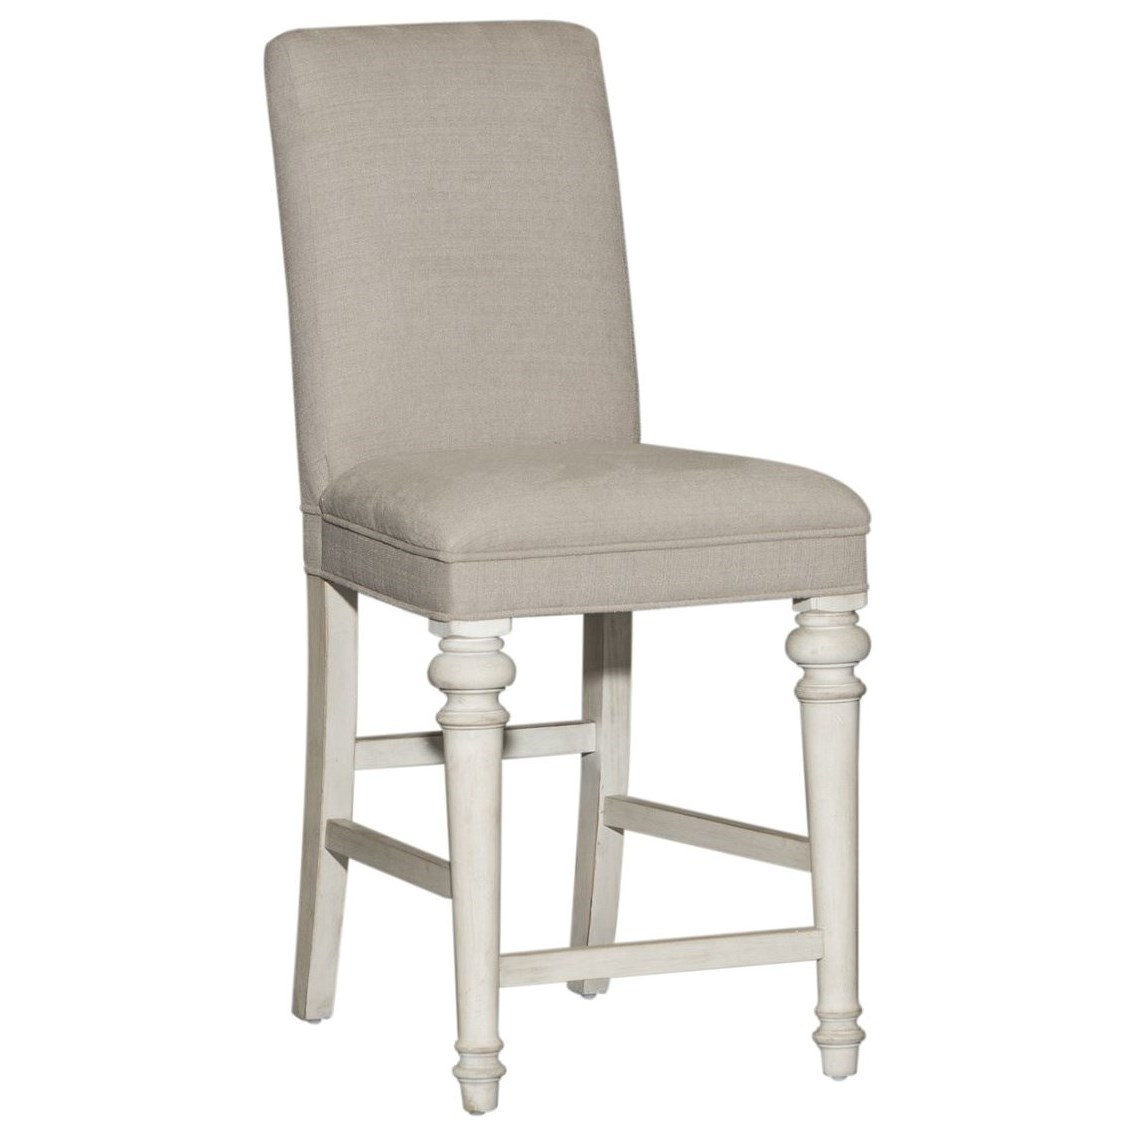 Haven Upholstered Counter Height Chair by Libby at Walker's Furniture